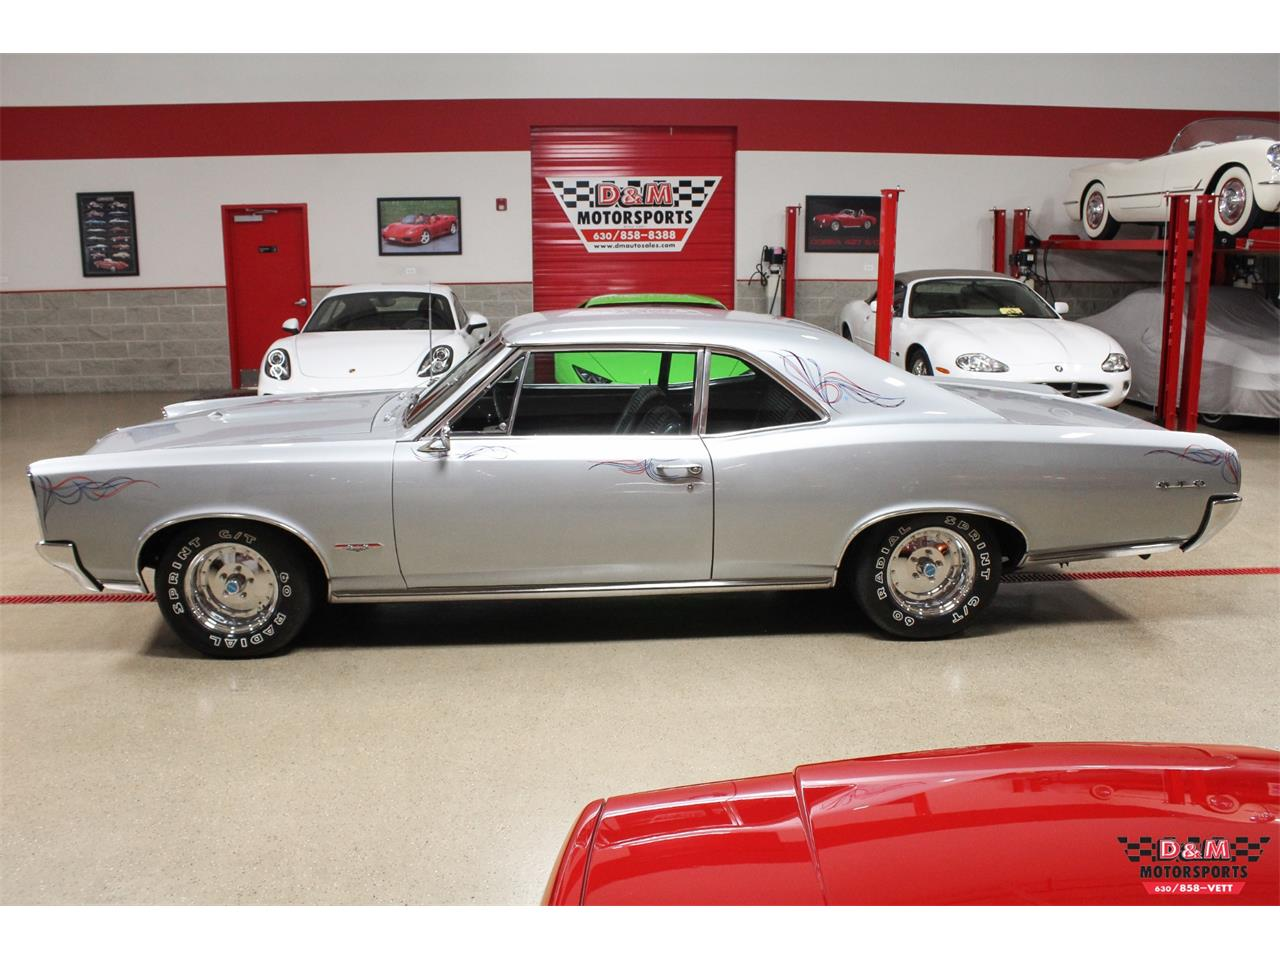 Large Picture of 1966 Pontiac GTO located in Glen Ellyn Illinois - $39,995.00 Offered by D & M Motorsports - O7FS